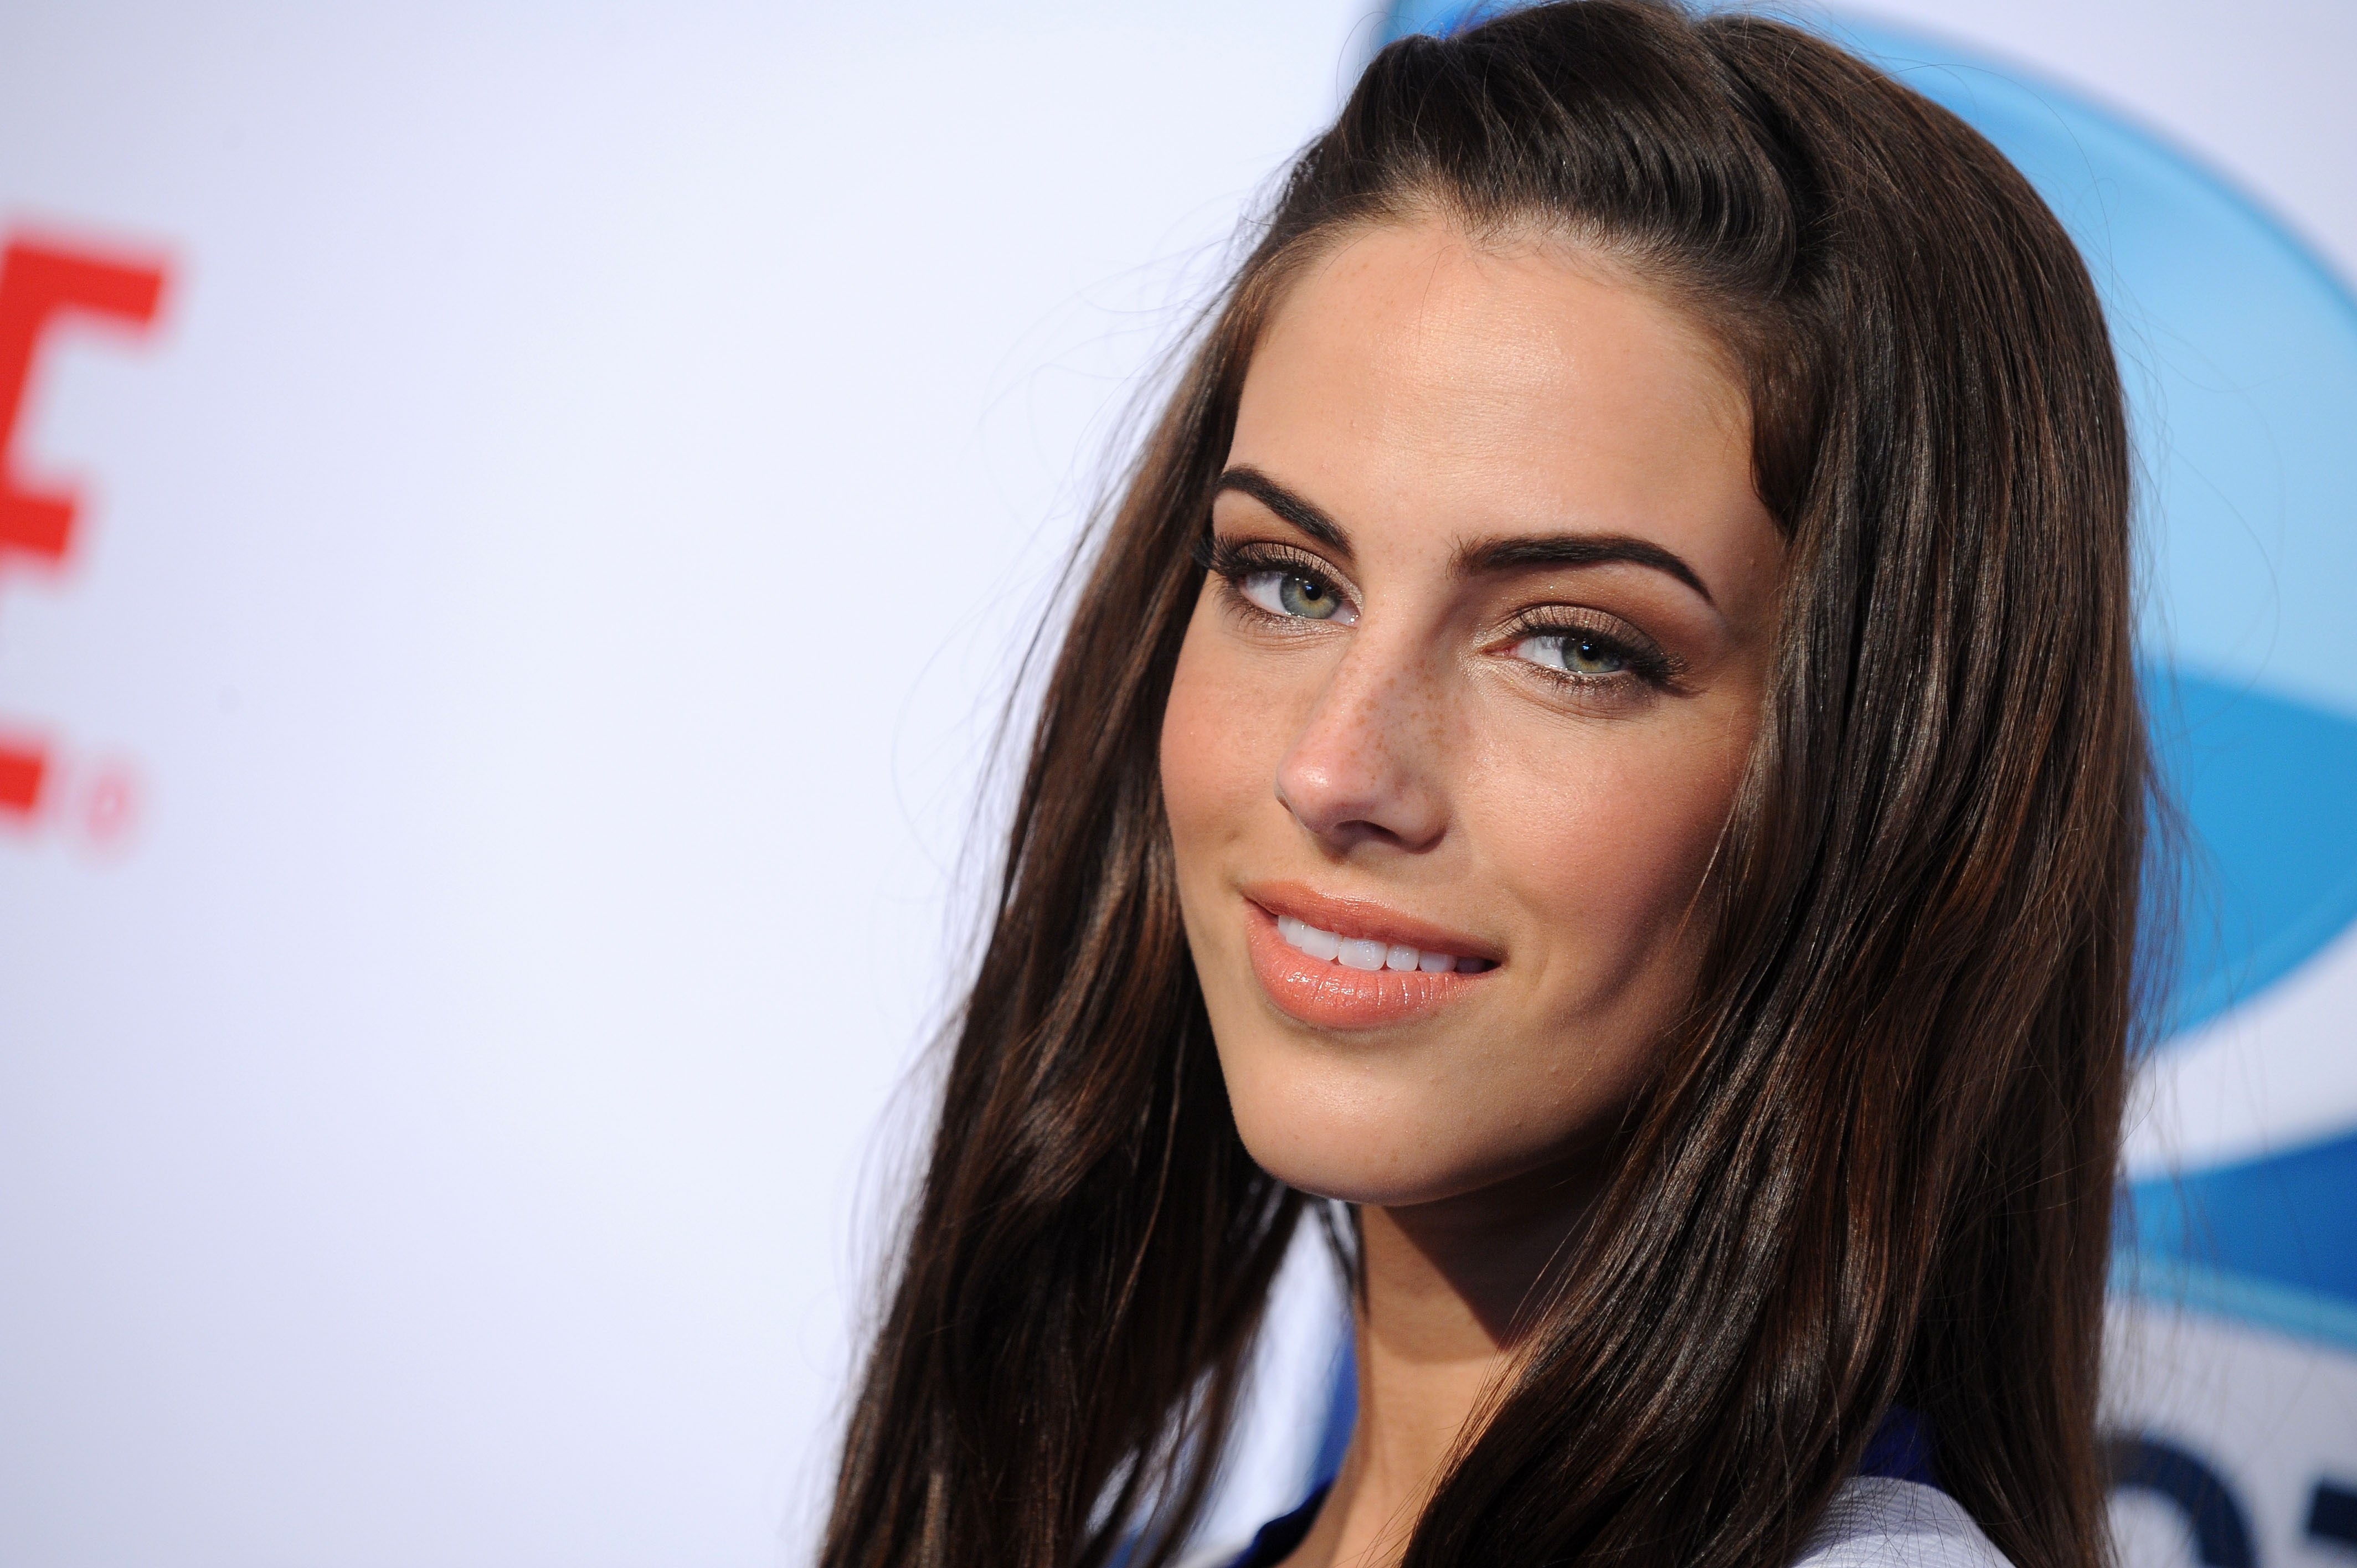 4256x2832 - Jessica Lowndes Wallpapers 24